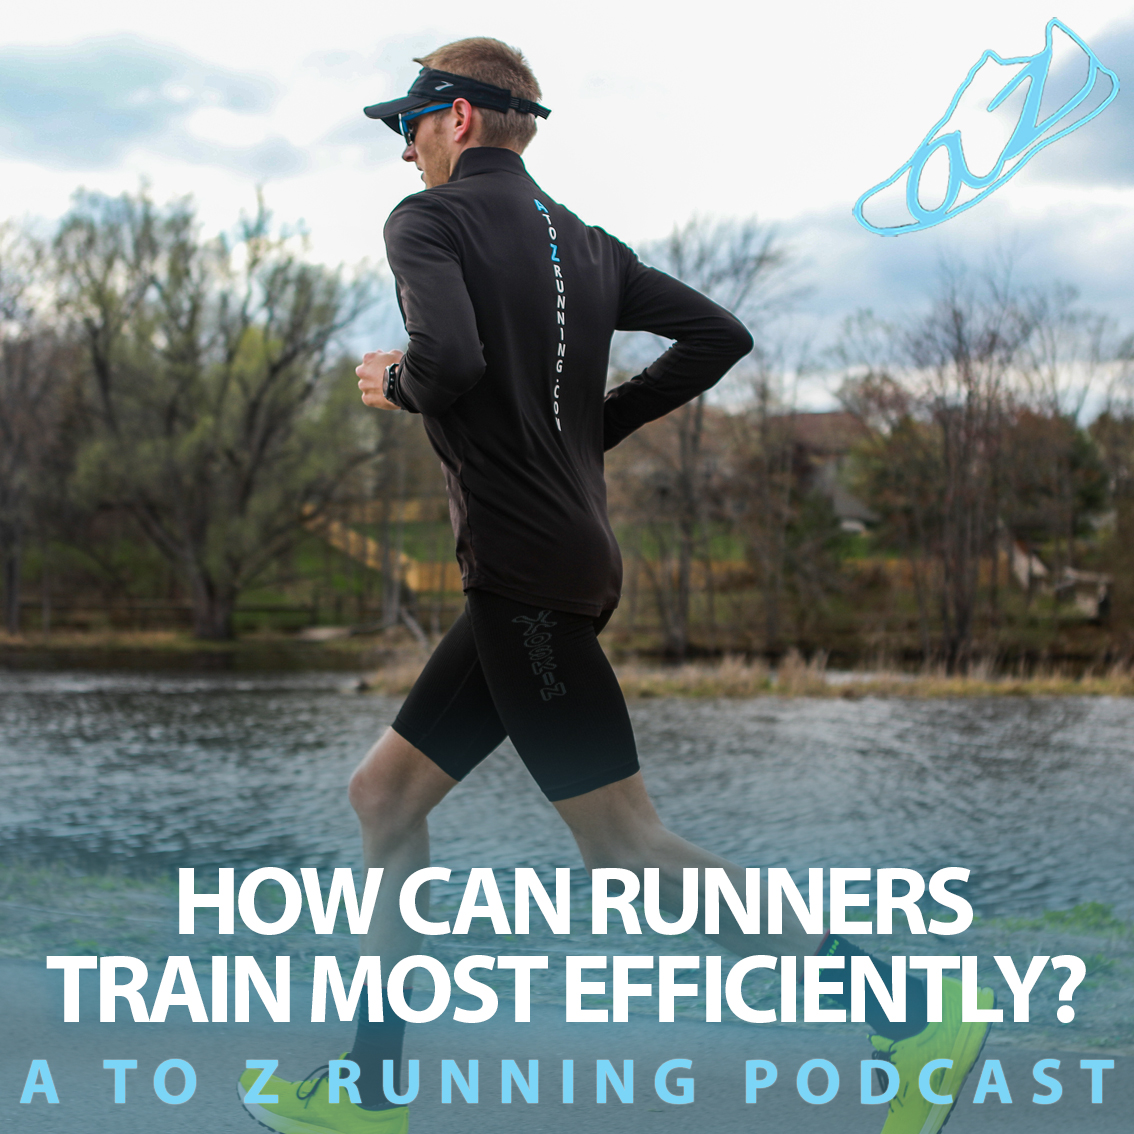 How can runners train most efficiently